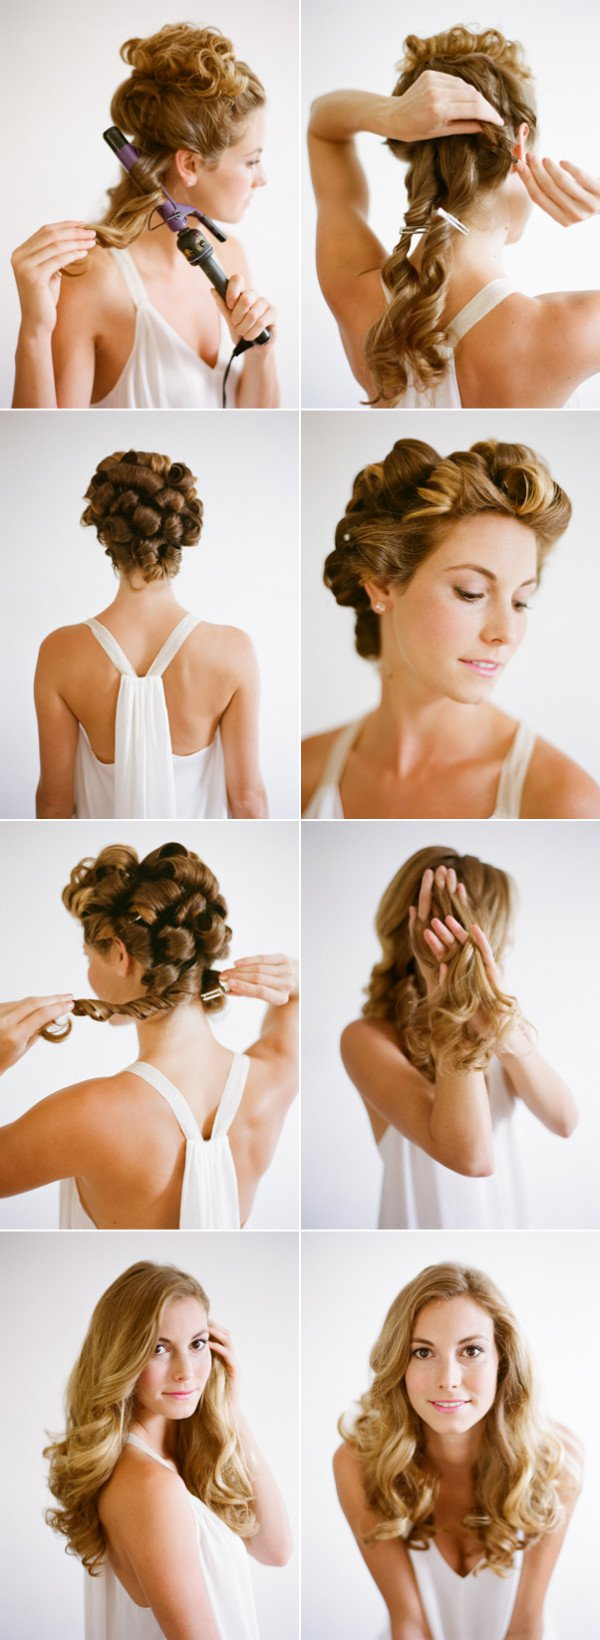 hairstyles_new_year28